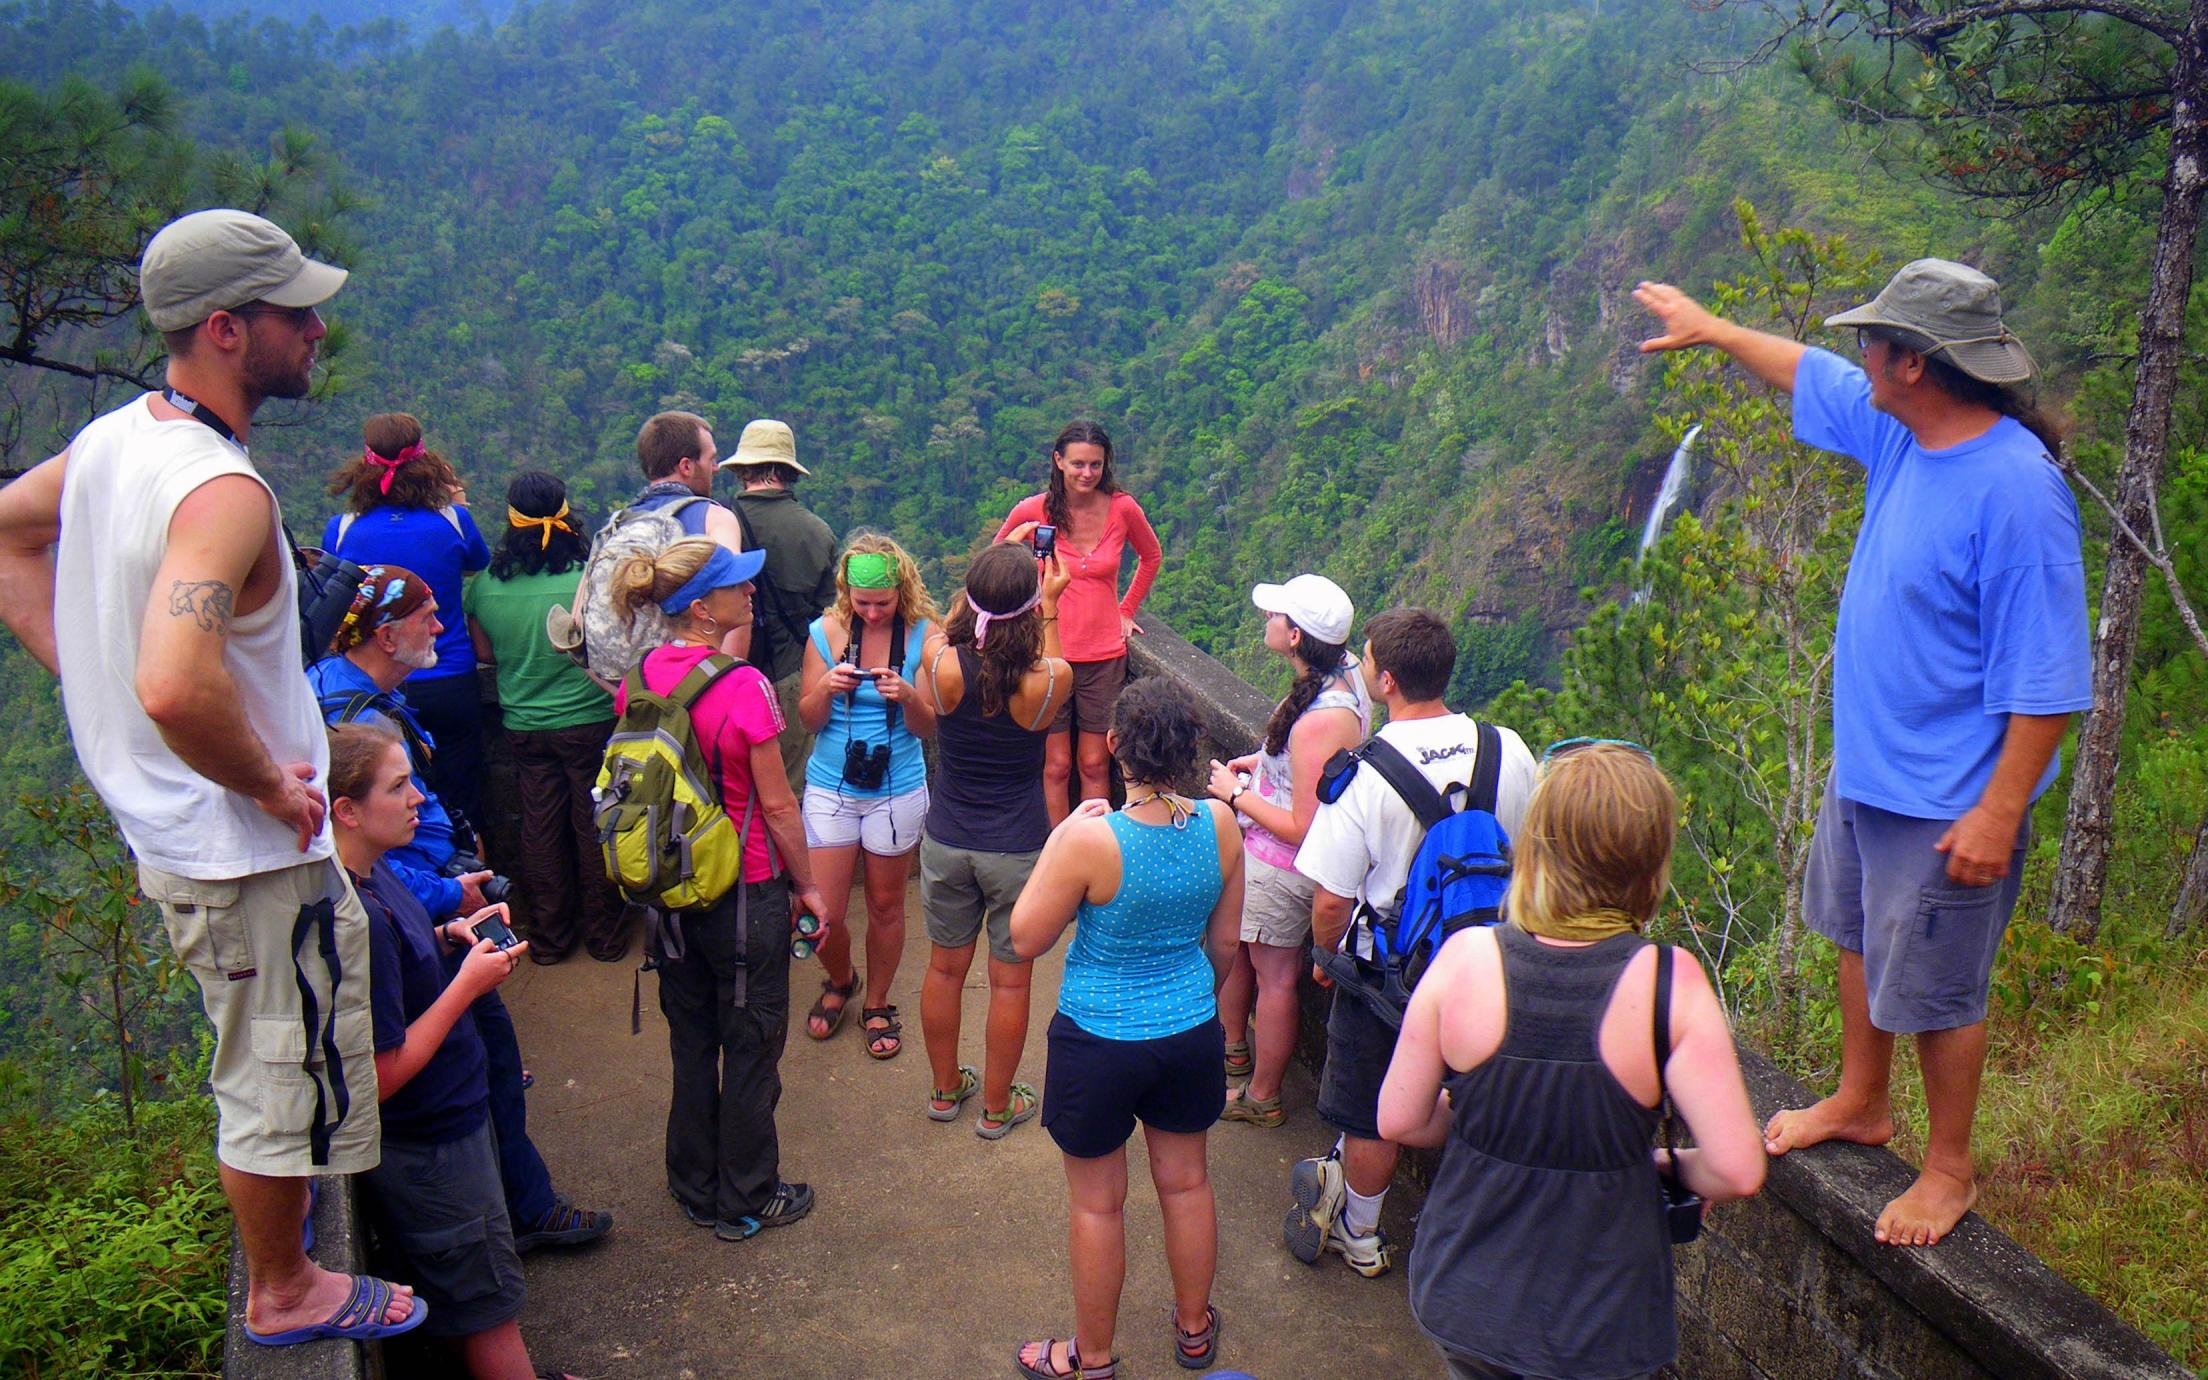 Students of the Tourism Studies Diploma Program on a field trip in the mountains